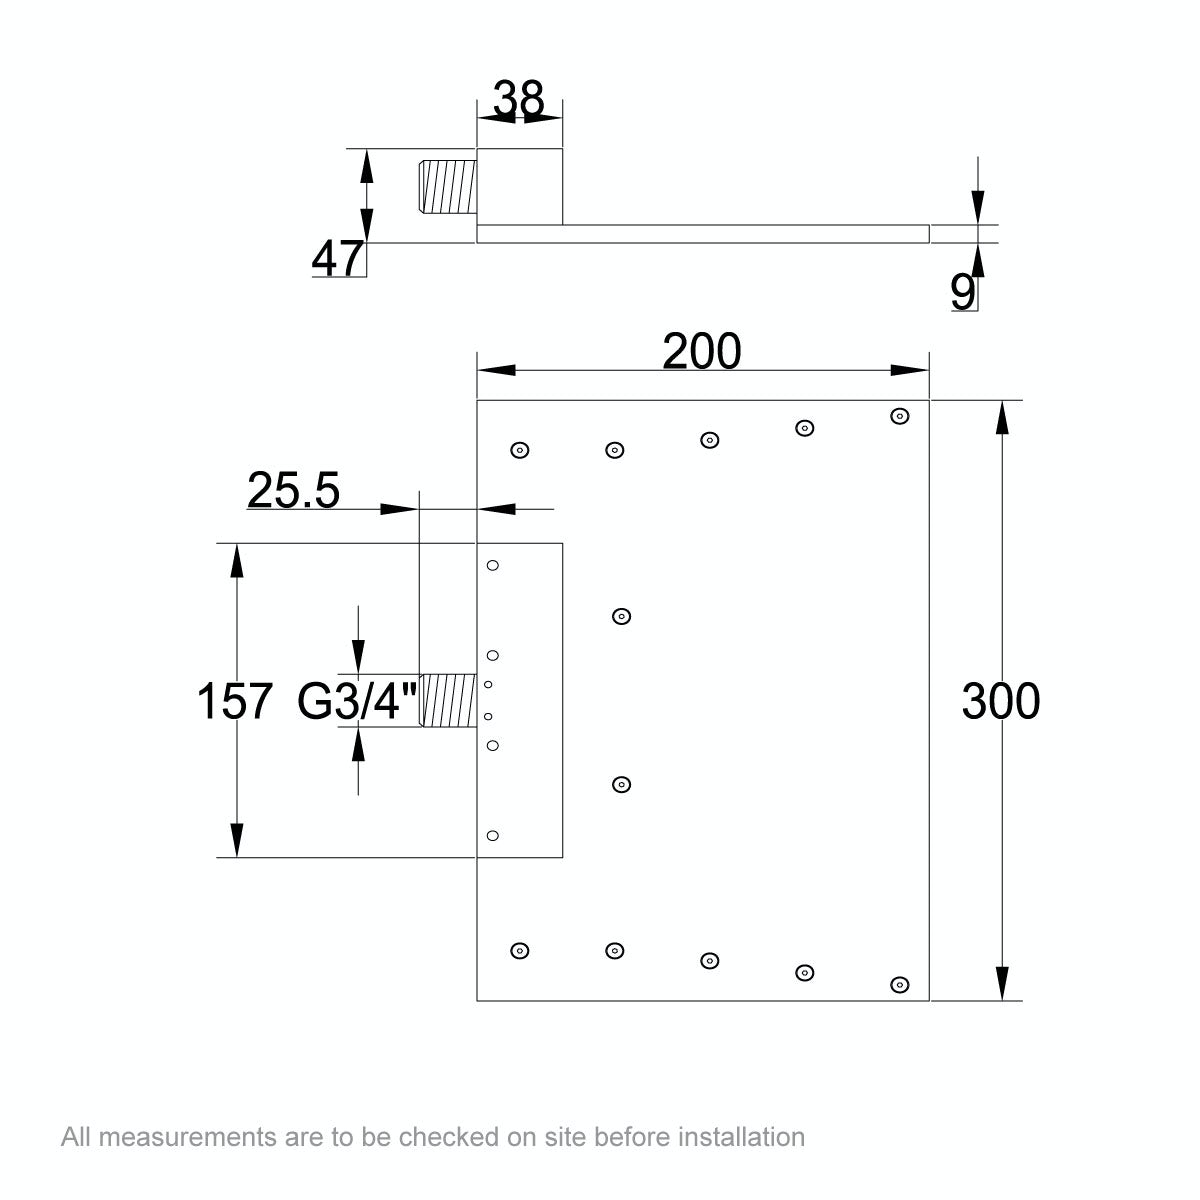 Dimensions for Mode Ando waterfall spout